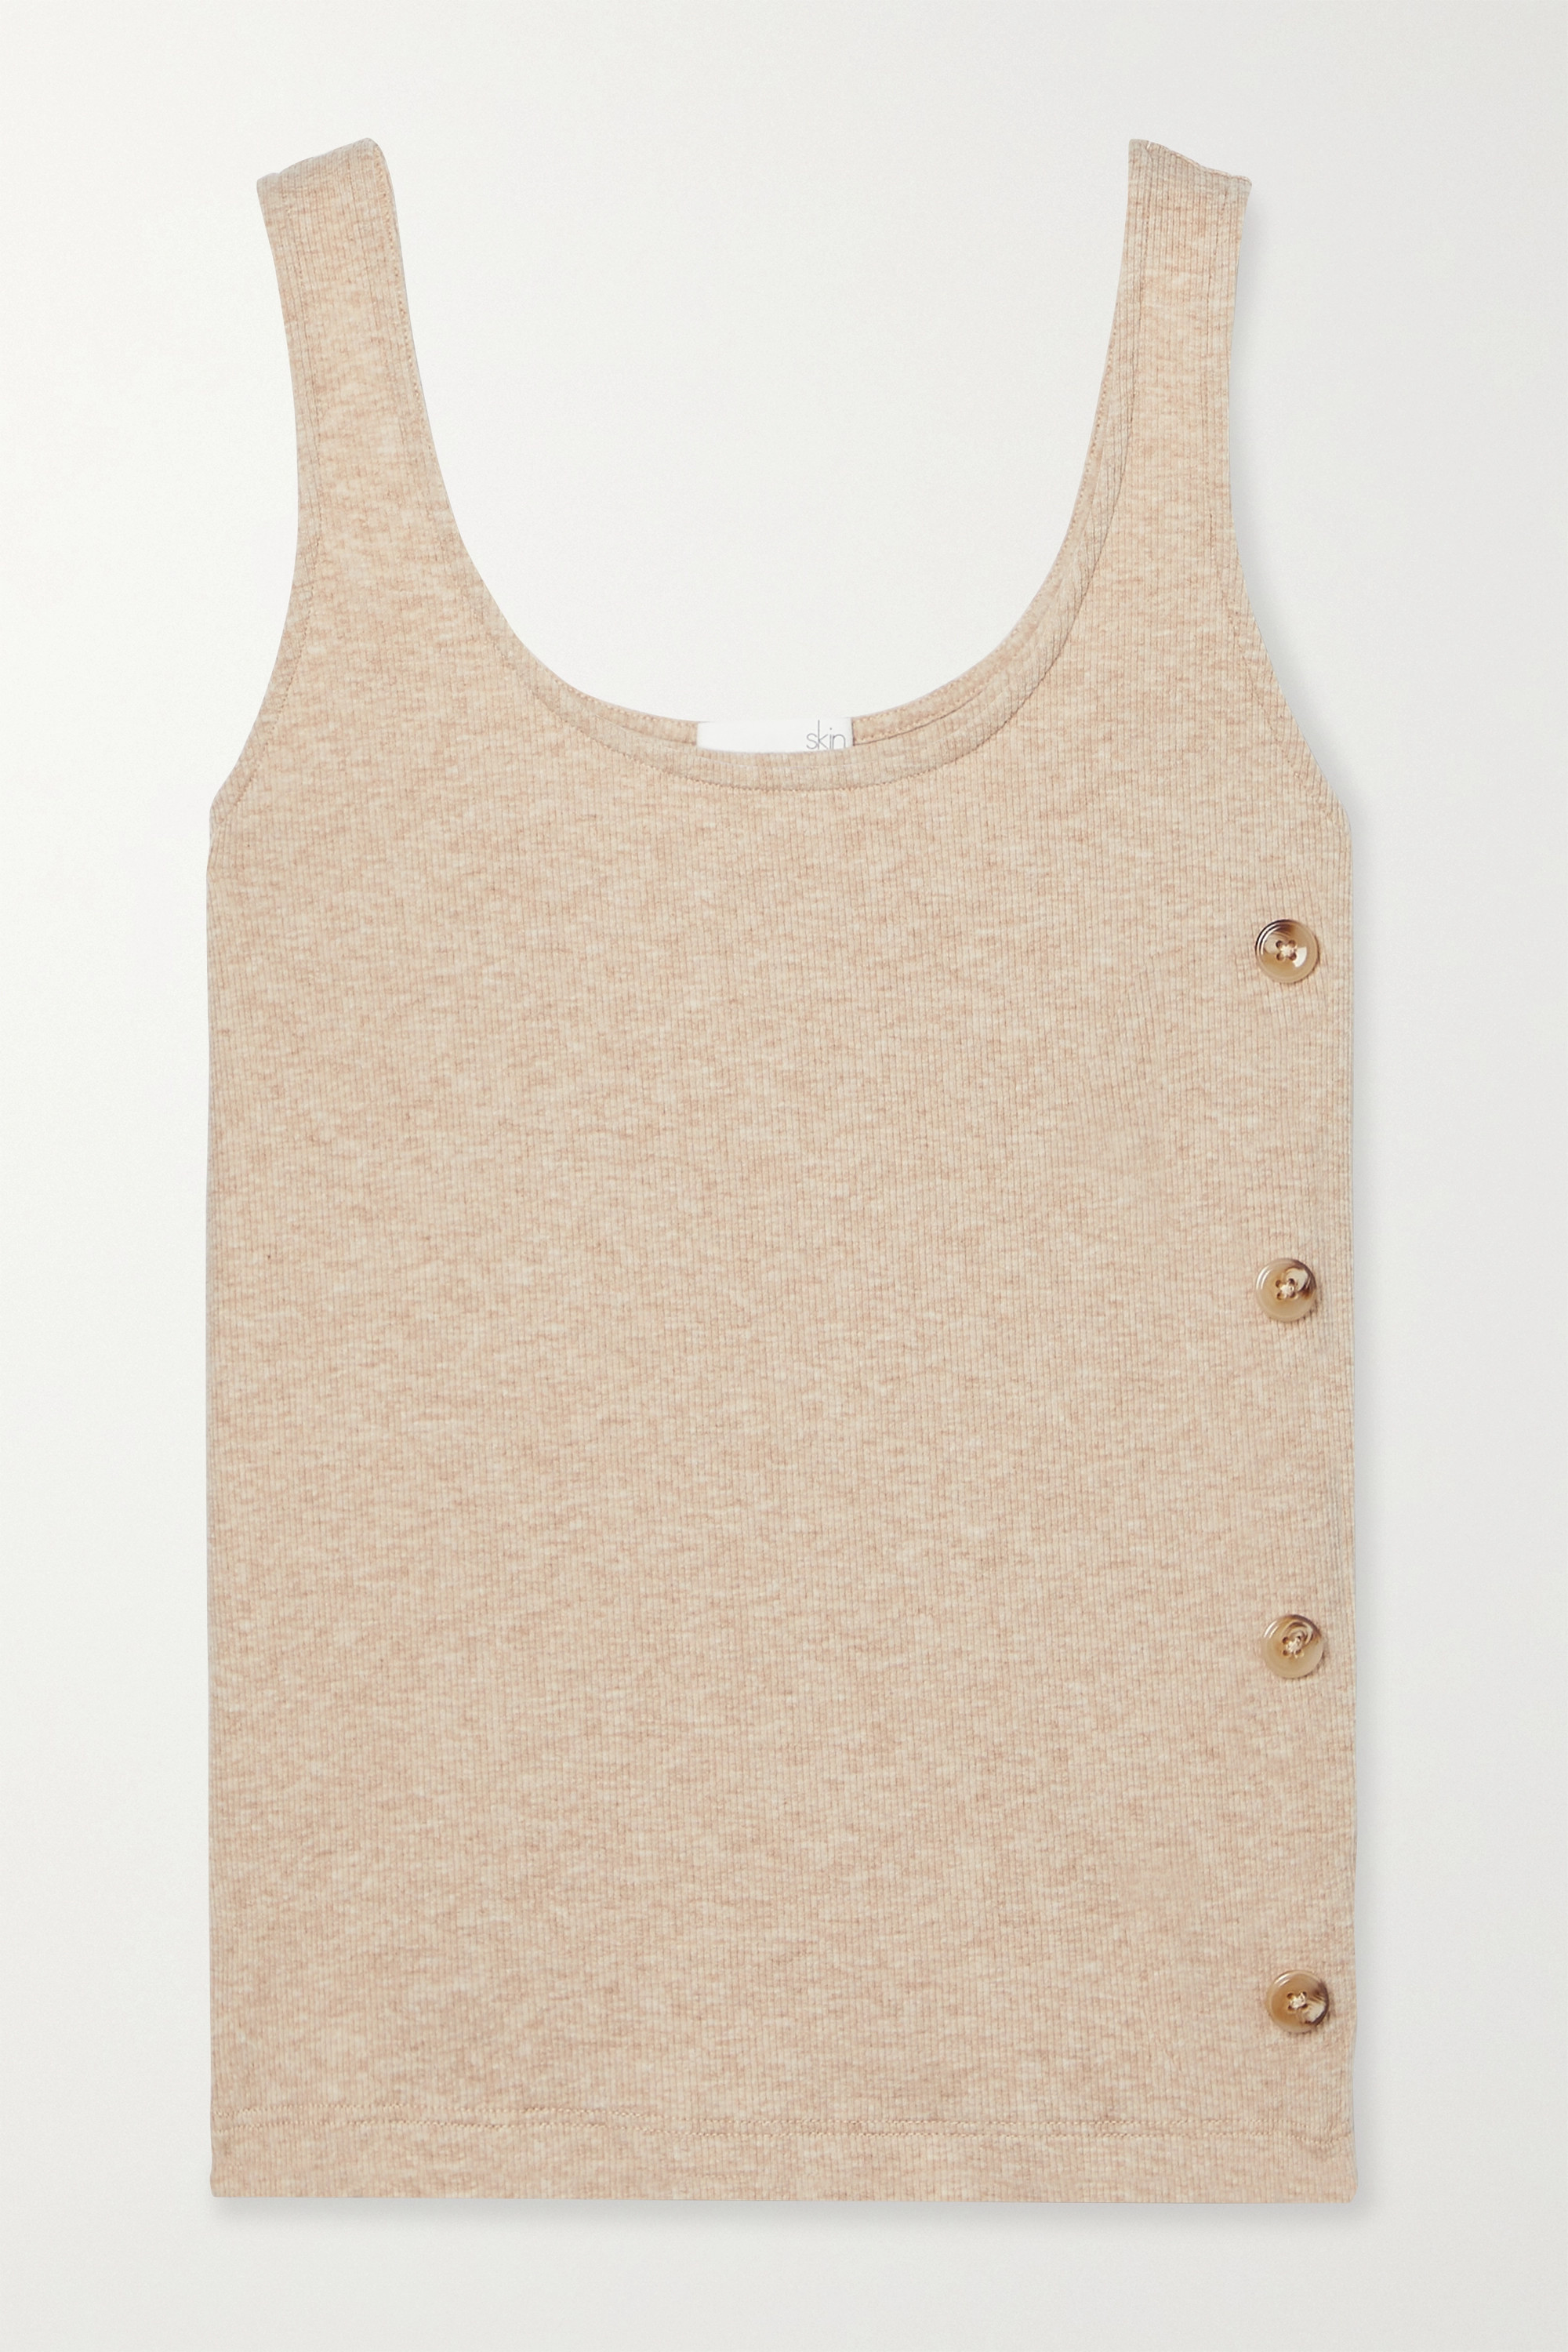 Skin + NET SUSTAIN Naima button-embellished ribbed stretch organic Pima cotton and modal-blend tank